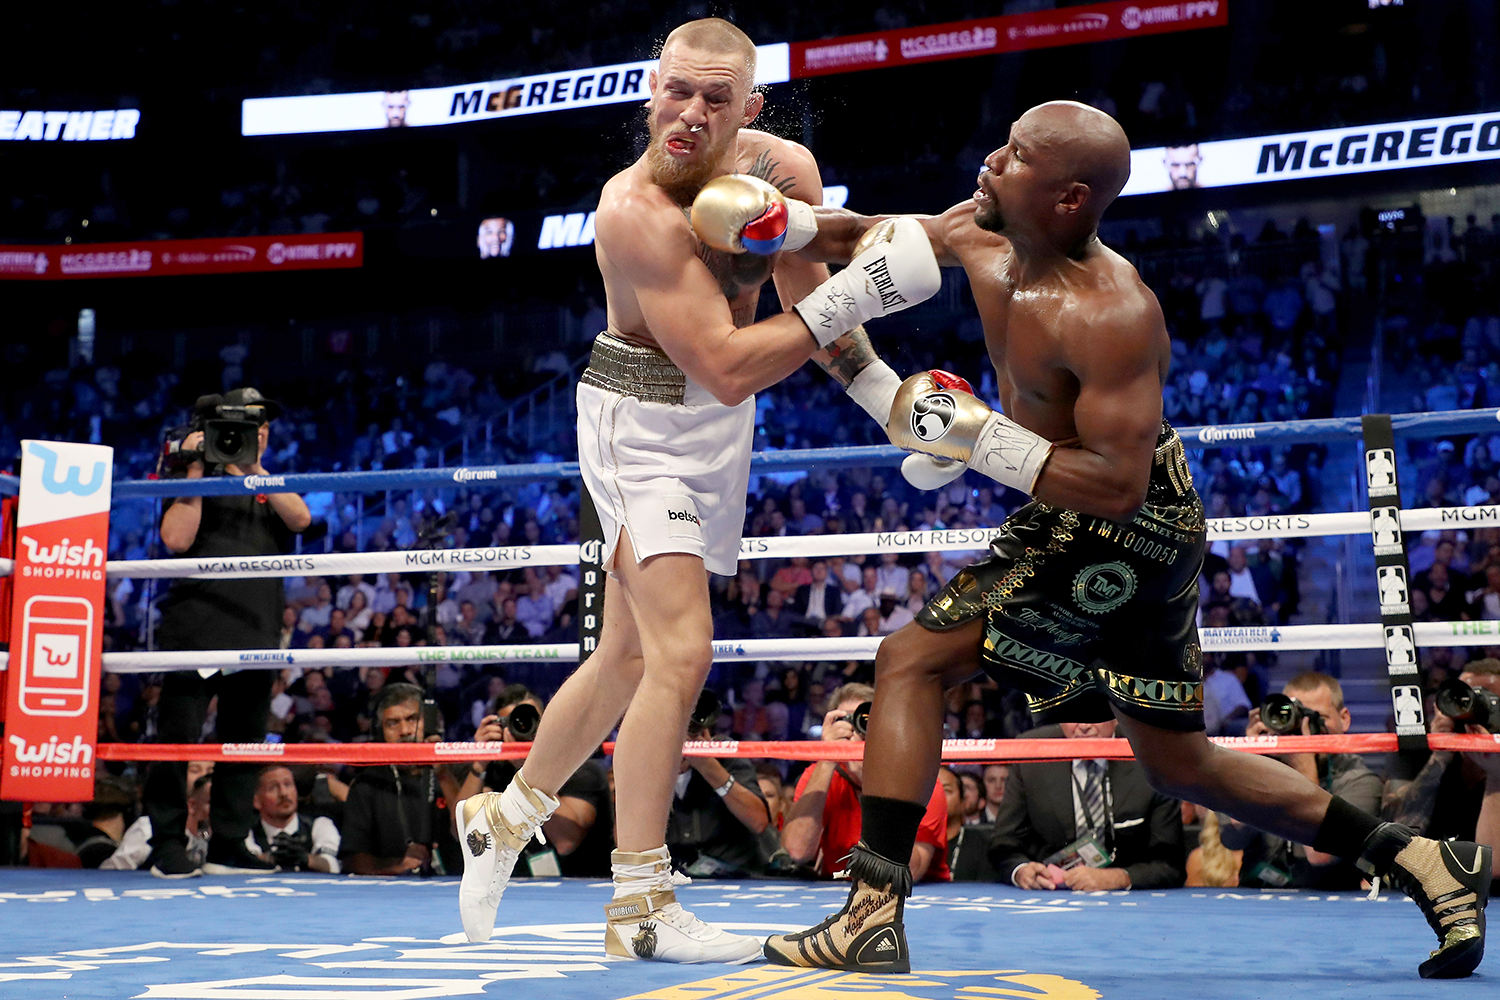 Floyd Mayweather's Boxing + Fitness Gyms Look to Expand Nationwide - SportTechie